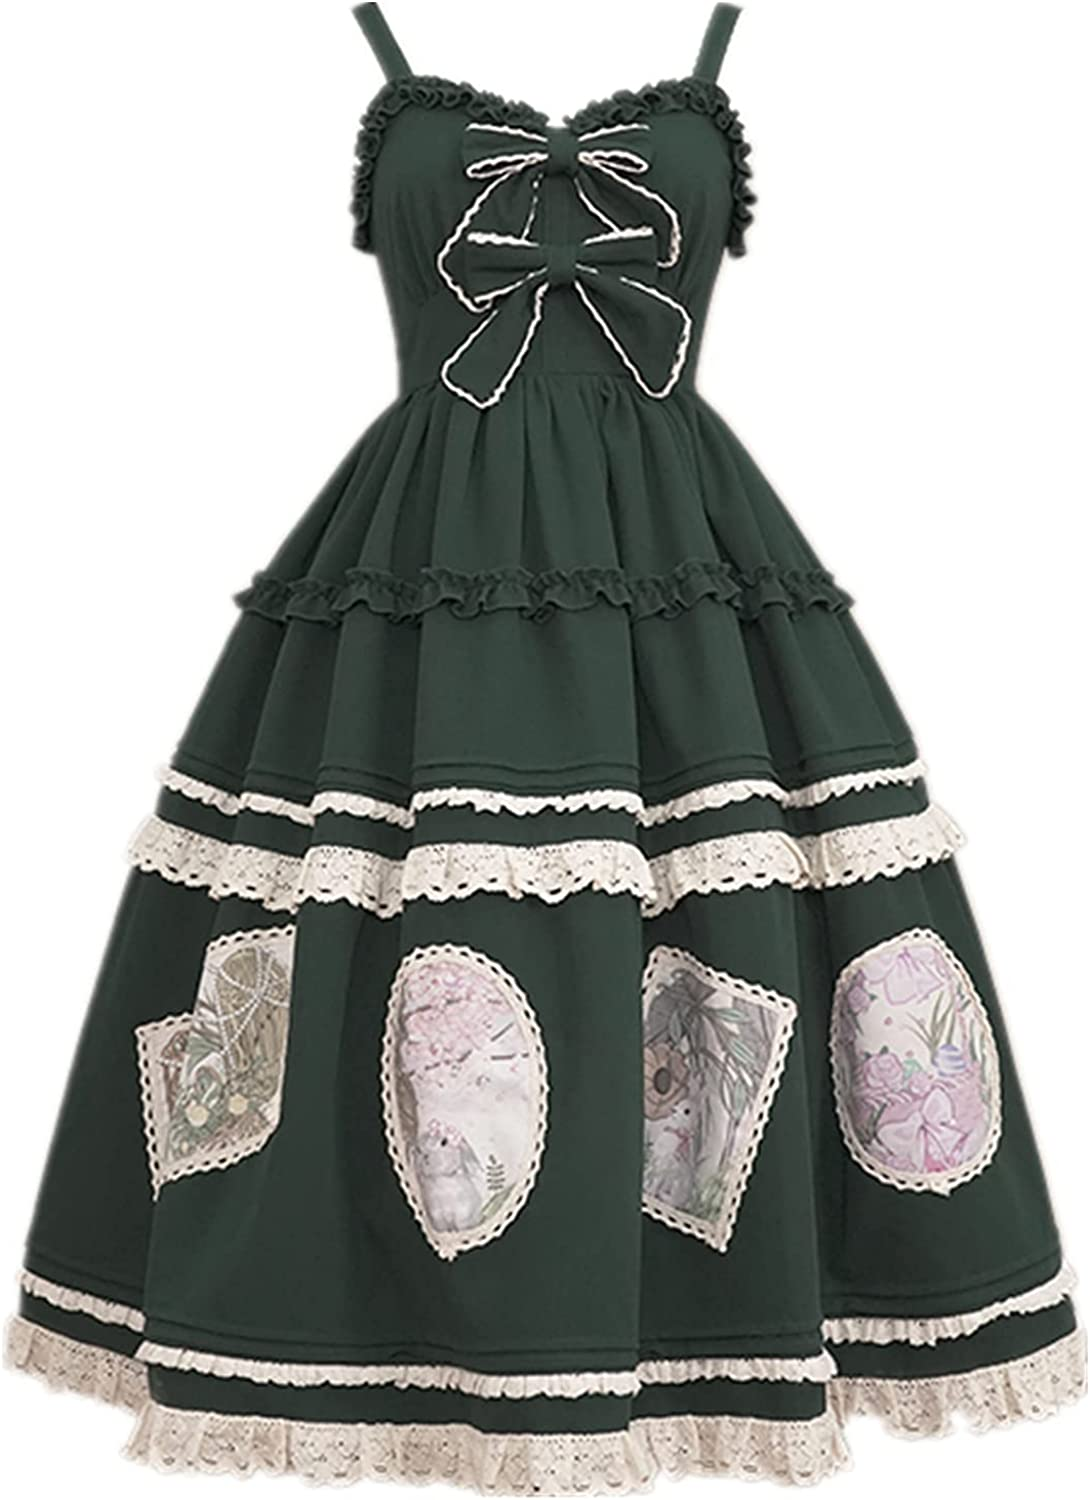 Lolita pure color green jsk dress line All stores are sold lolita elegant skirt Cheap mail order specialty store cla